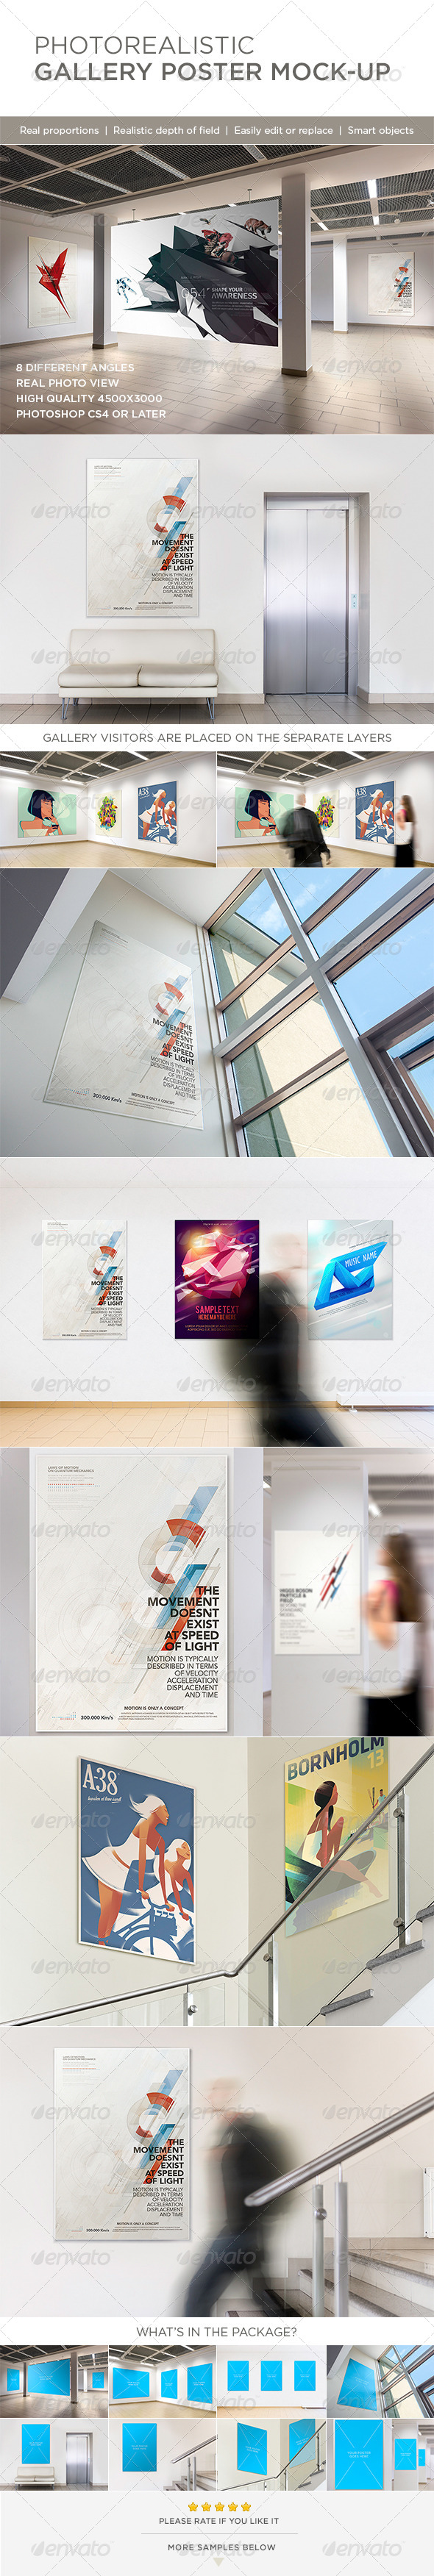 Photorealistic Gallery Poster Mock-Up - Posters Print